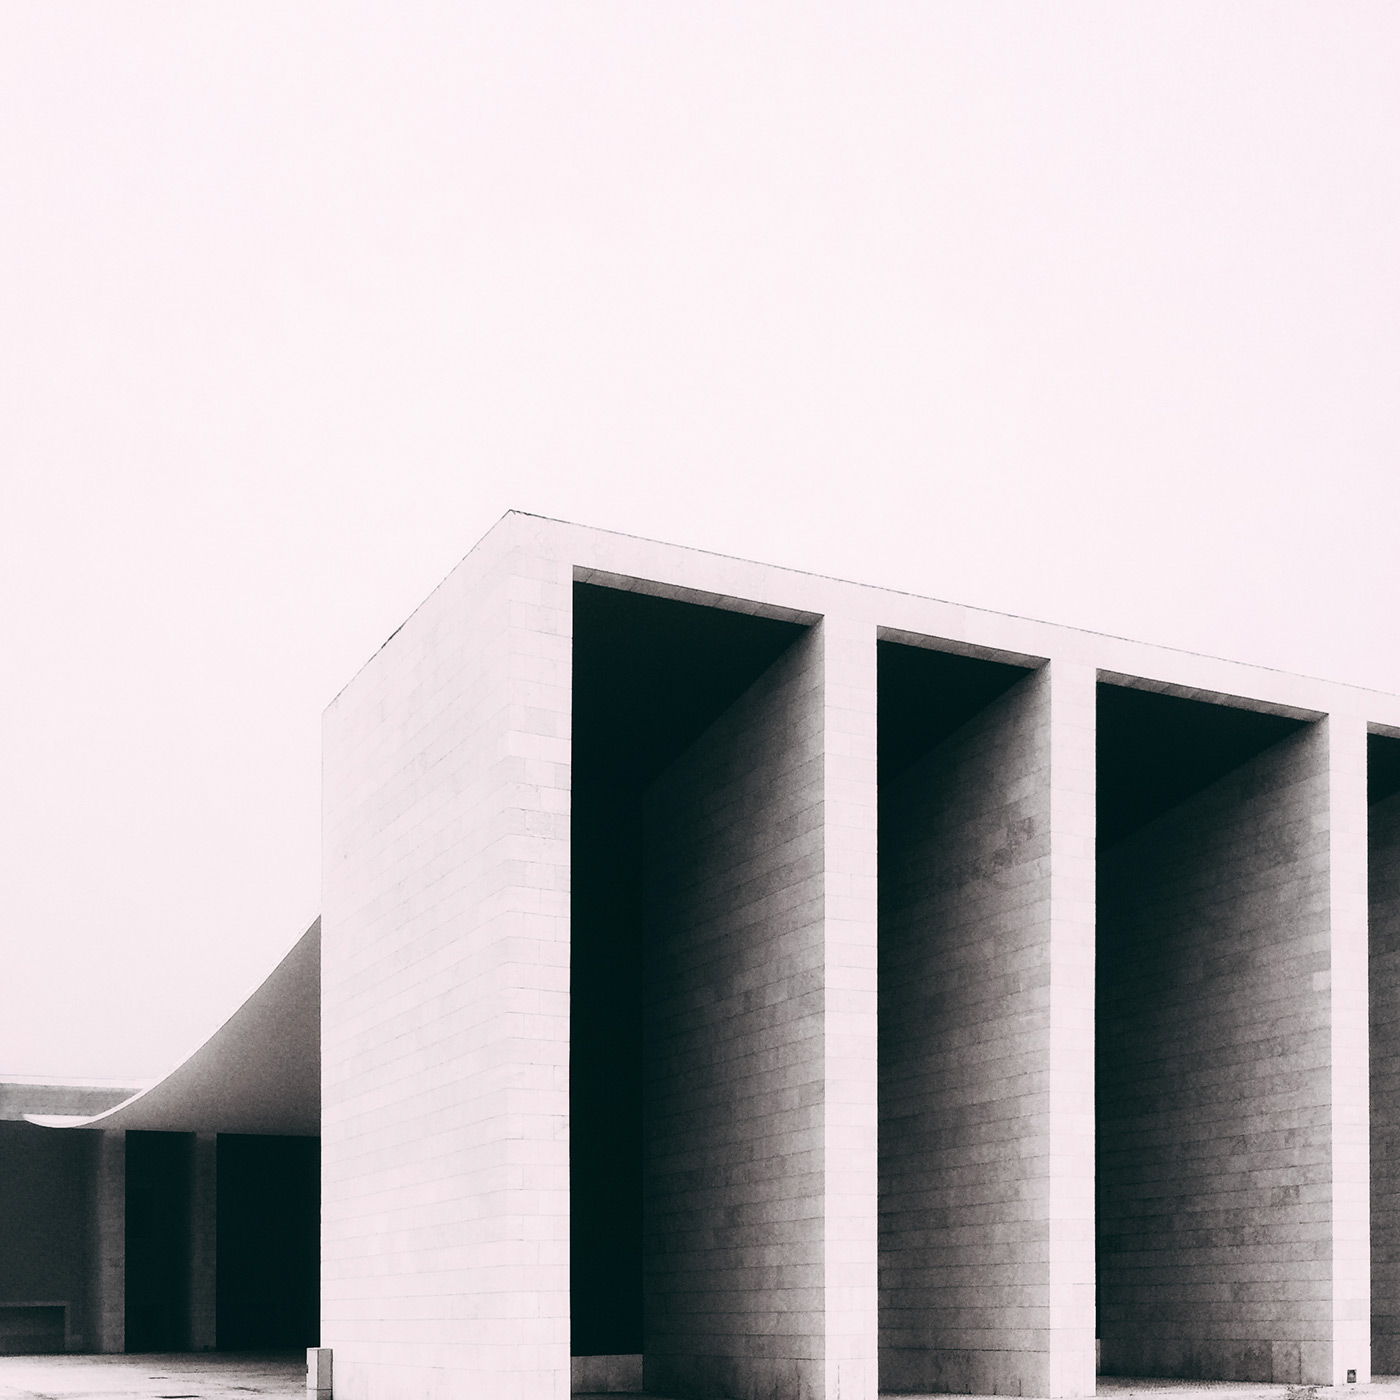 Copy of Pavilion of Portugal <br />Location: Lisbon, Portugal <br />Architects: Alvaro Siza